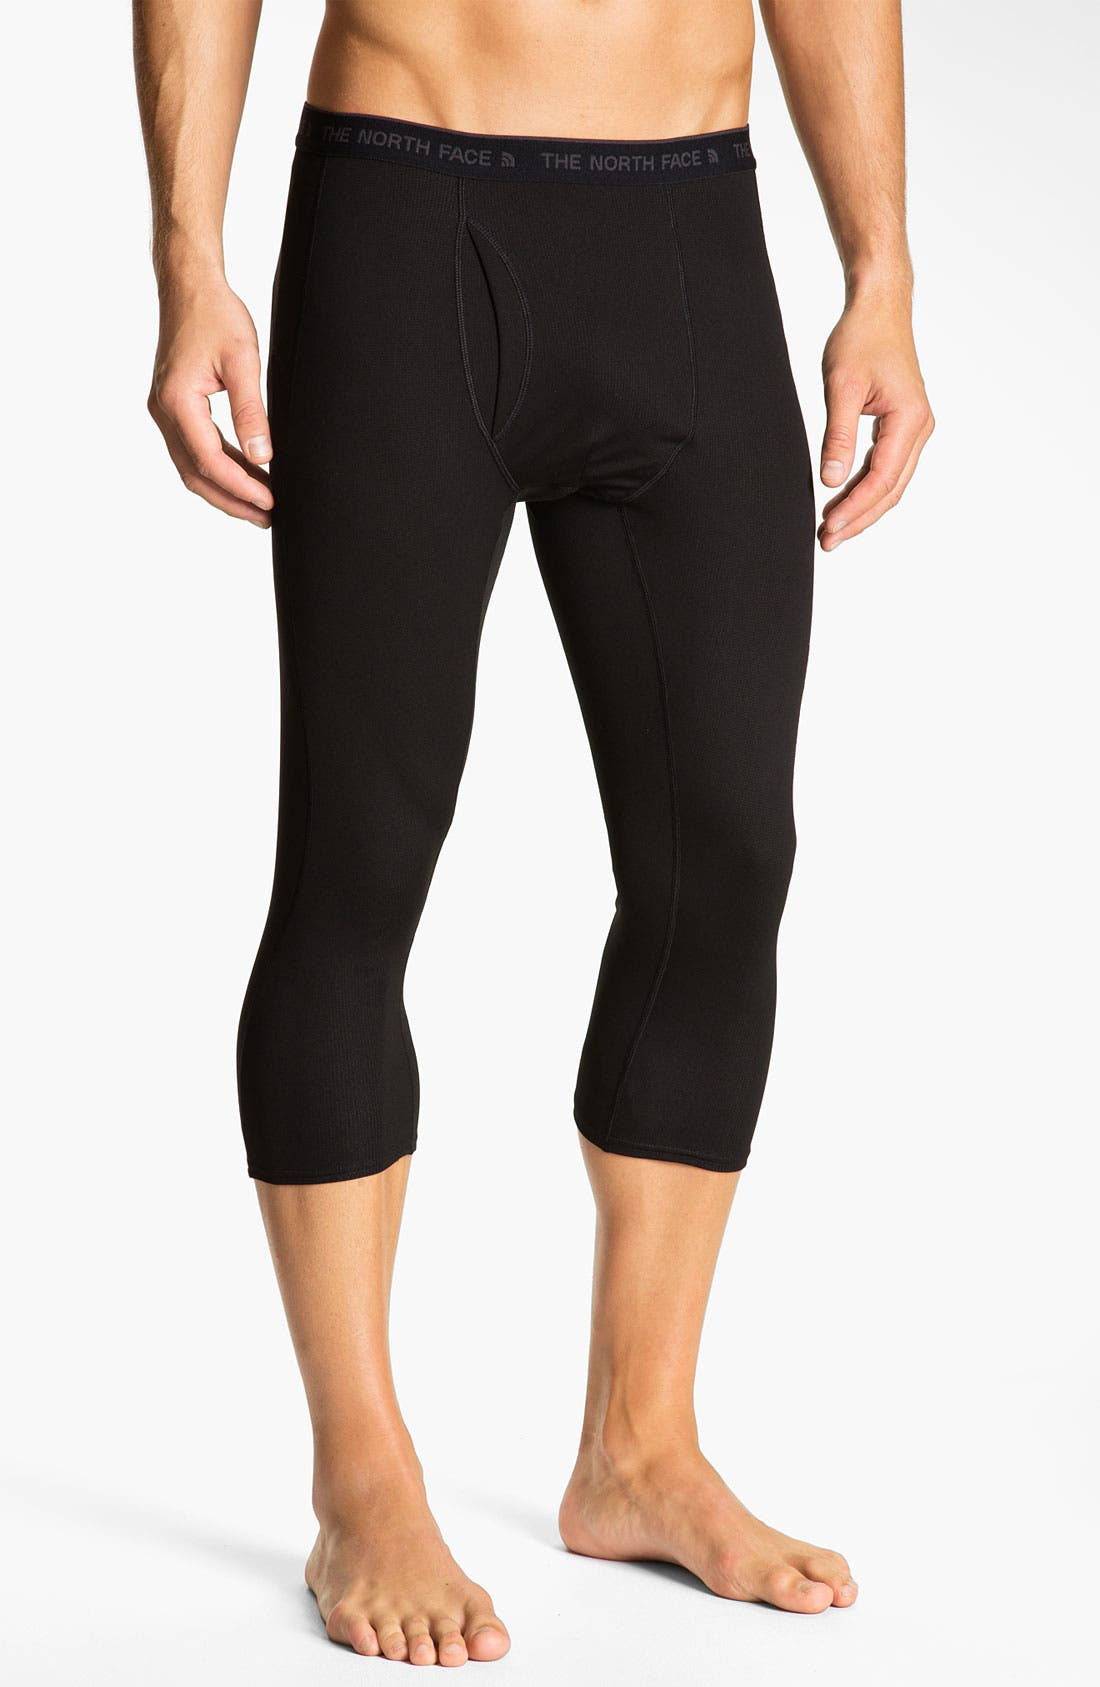 Main Image - The North Face 'Baselayer - Light' FlashDry™ Boot Top Leggings (Online Exclusive)